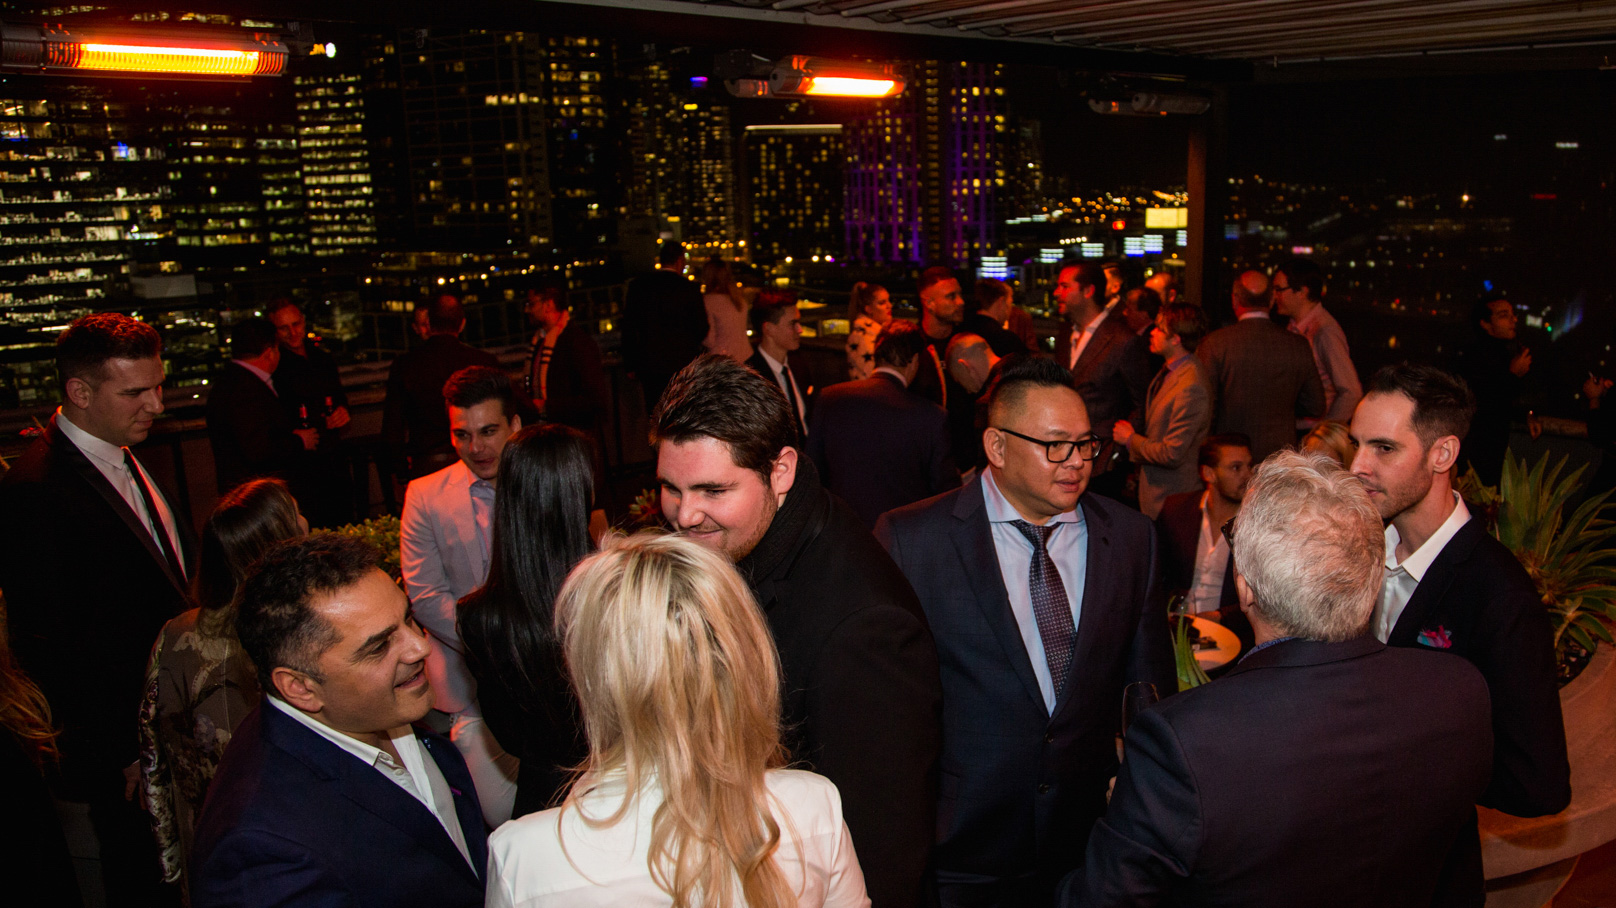 Bullrush---Melbourne-Launch-Party--54.jpg